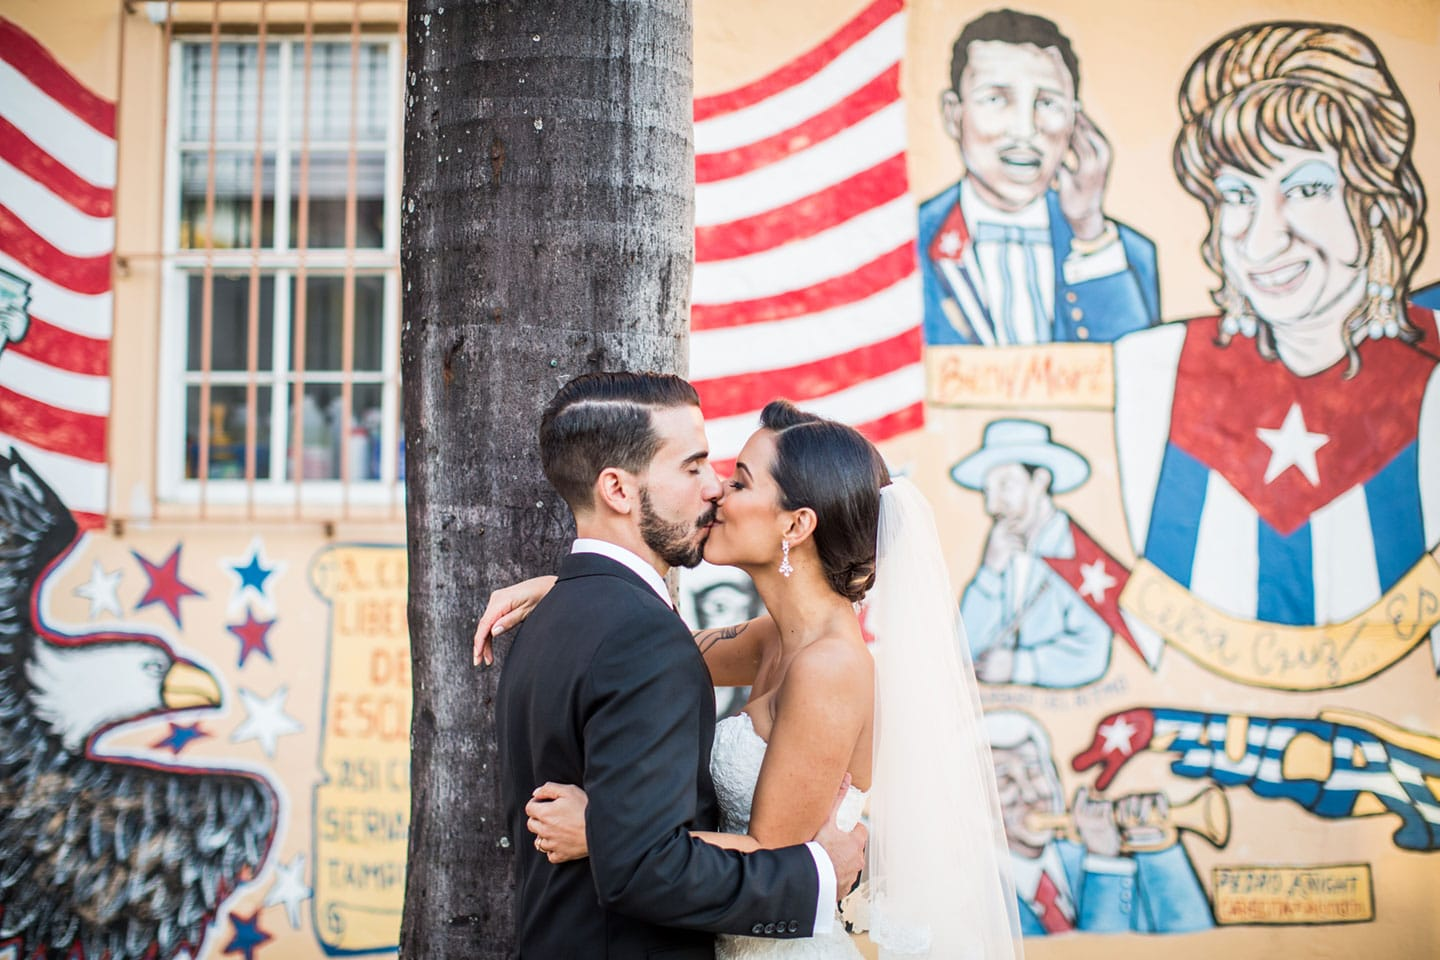 37-Miami-Little-Havana-wedding-photography